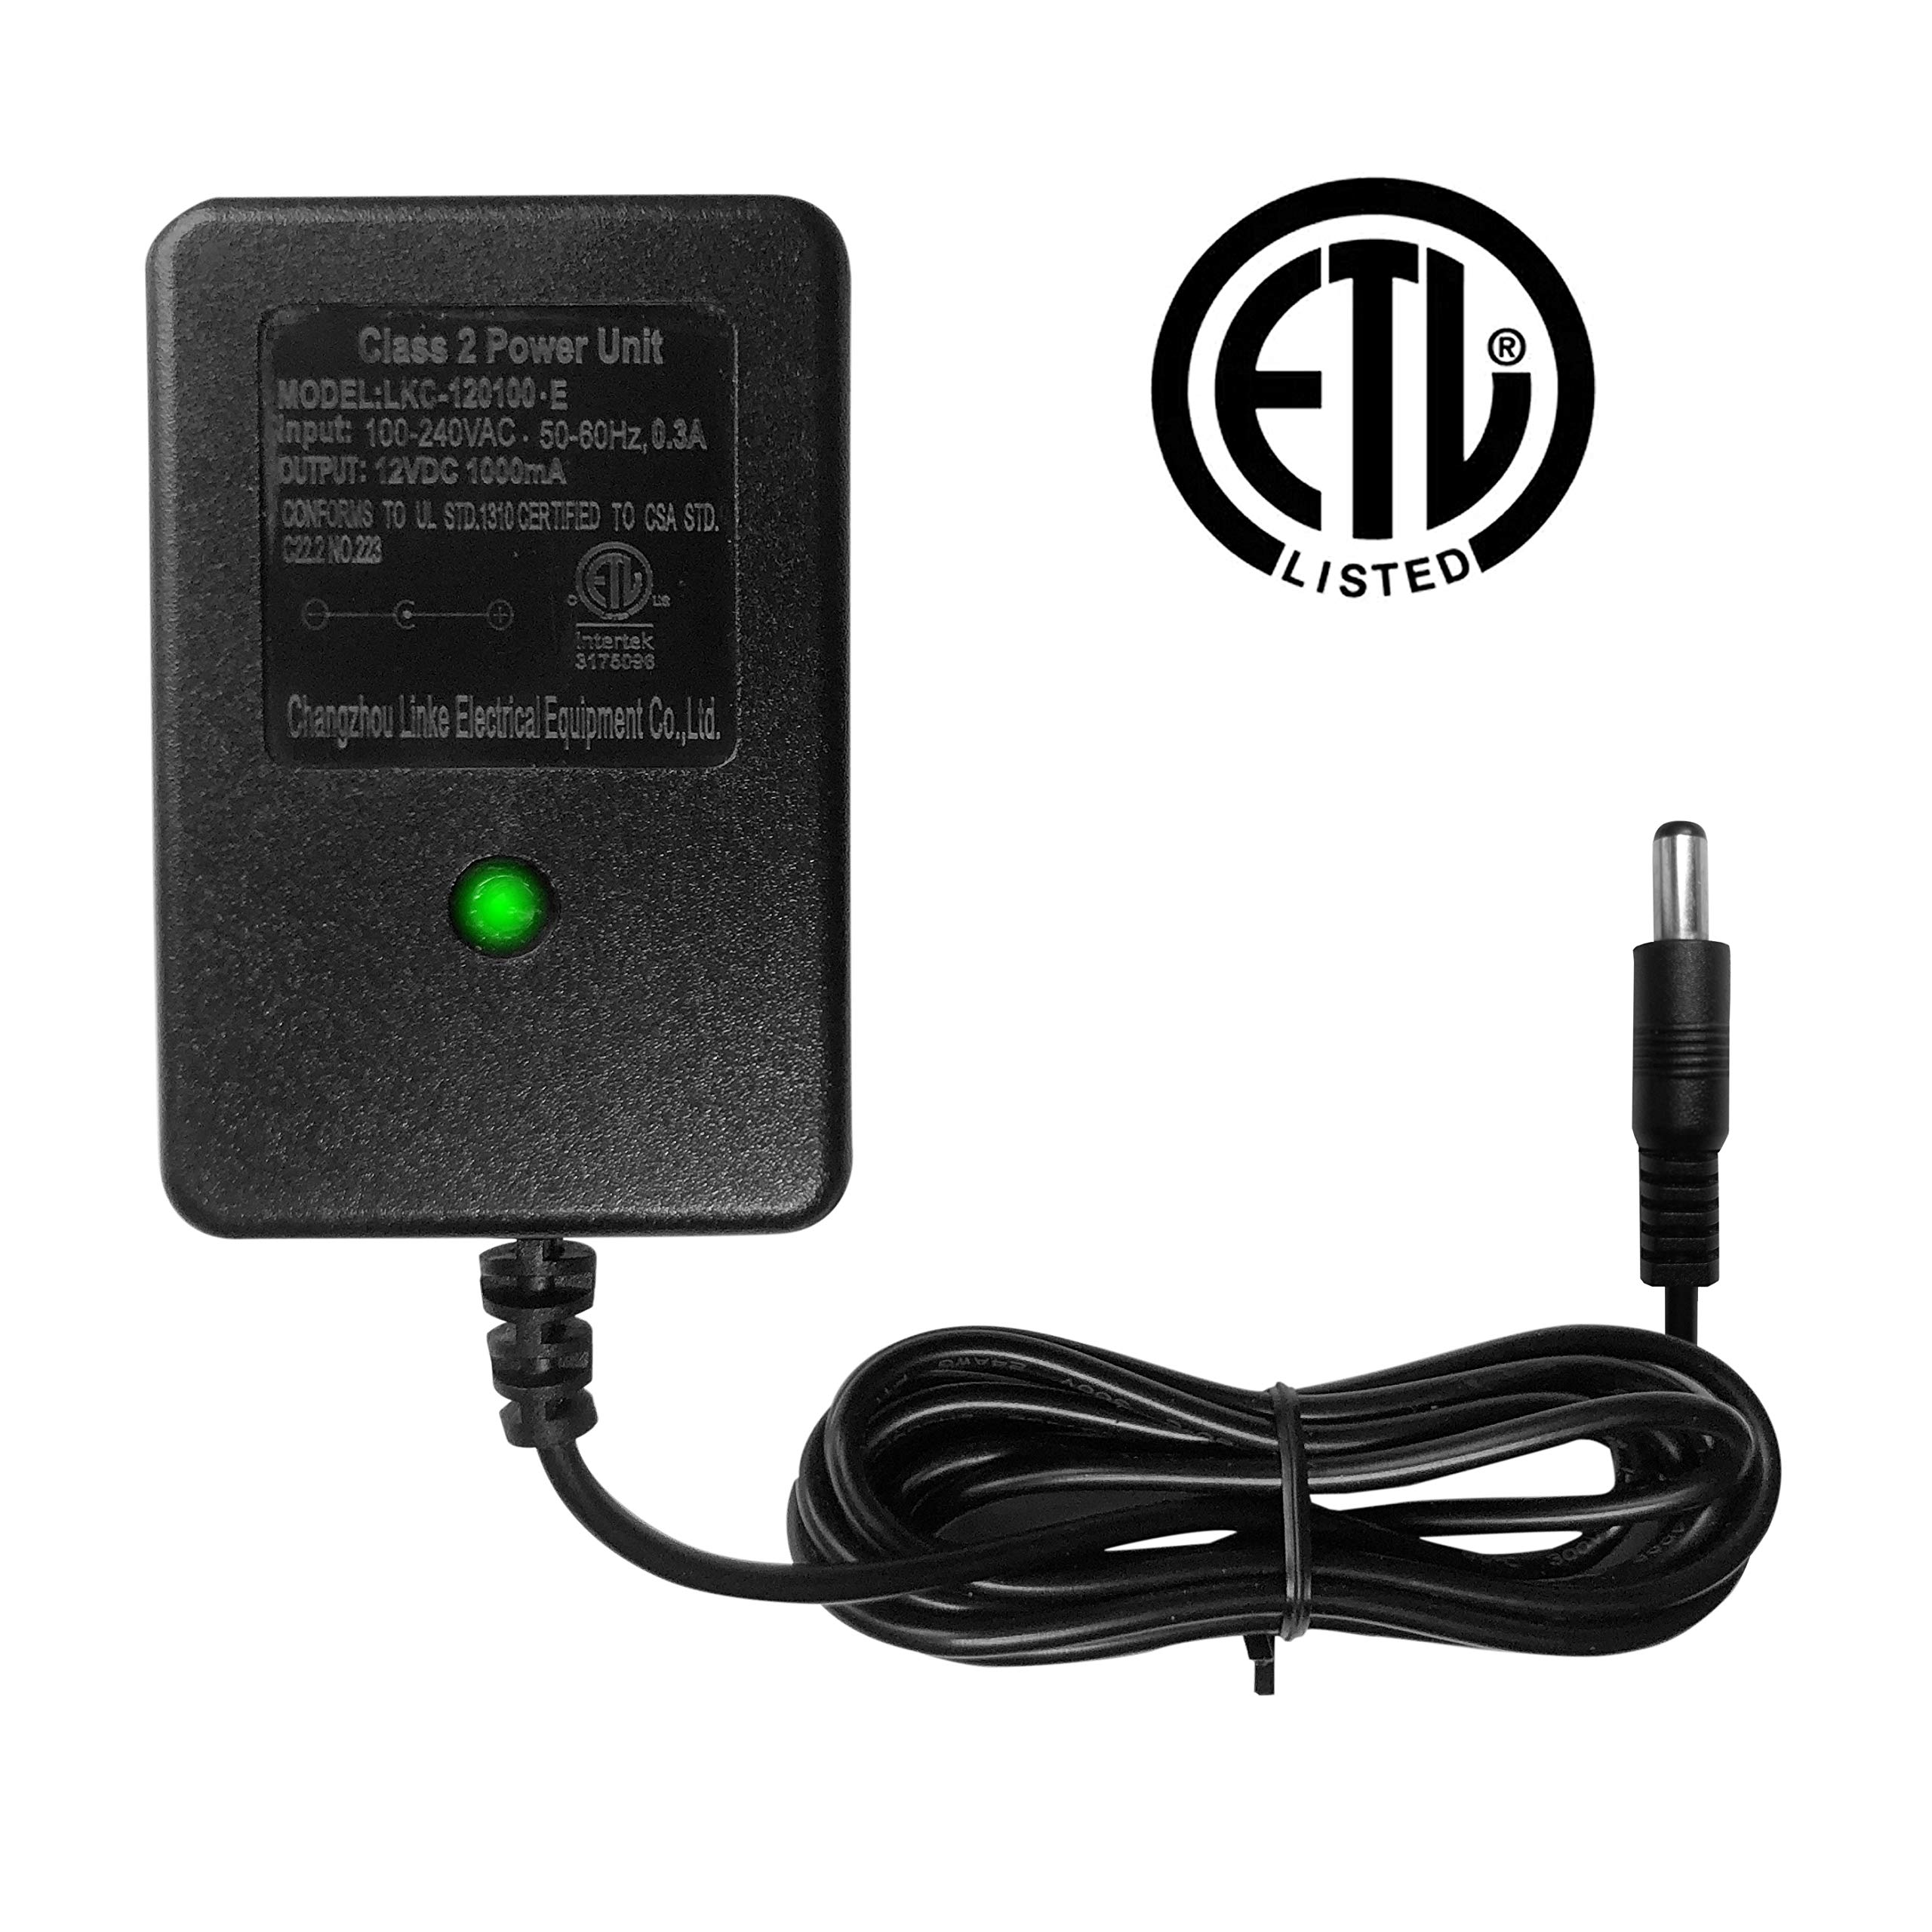 FLHFULIHUA 12 Volt Battery Charger 12V Kids Ride On Charger for Best Choice Products Universal Charger Battery Power Supplies Compatible Ride On Car